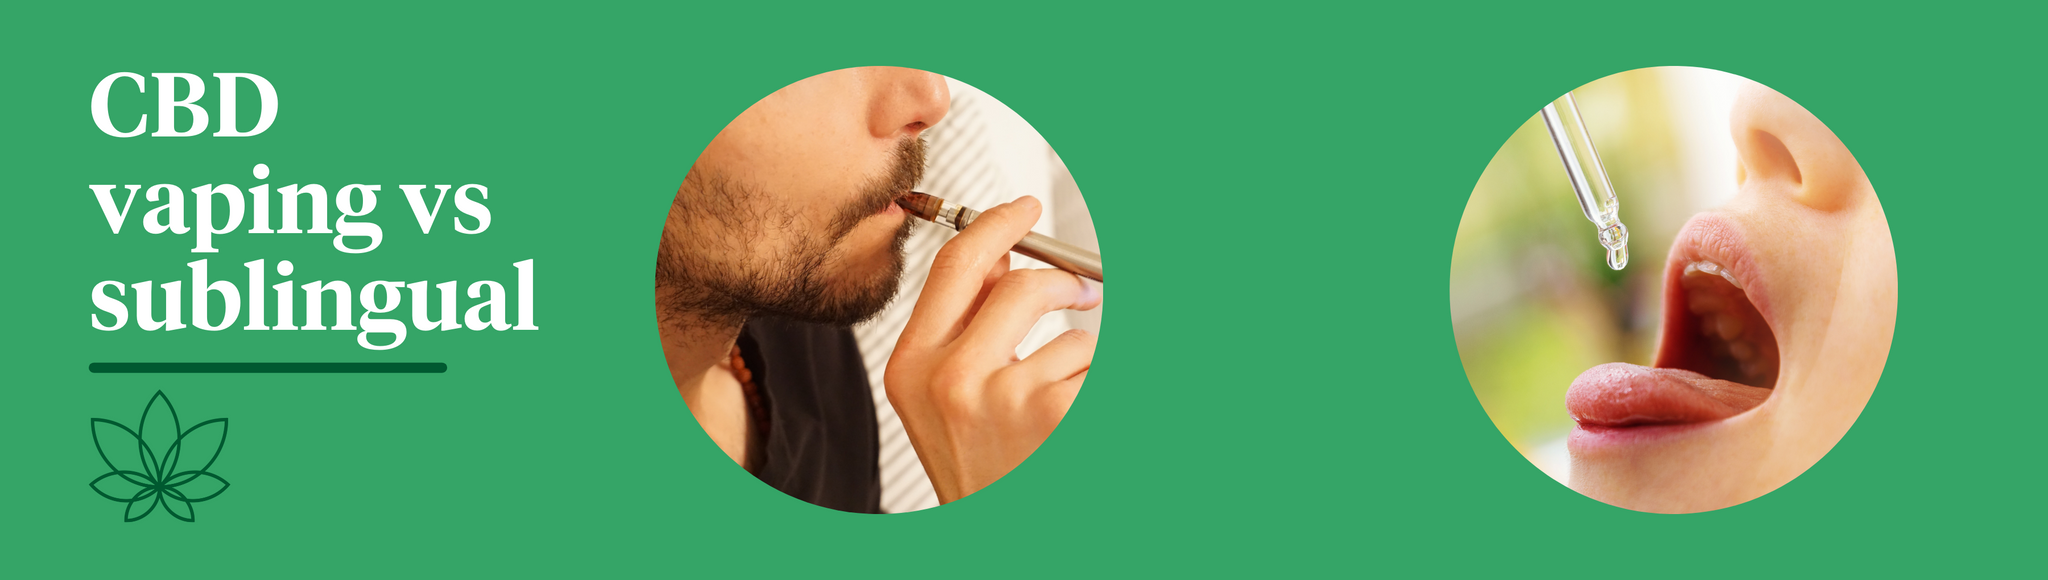 A green background with the Supreme CBD logo and two images, one image is of a person vaping CBD and the other is taking their dosage of CBD via sublingual. Showing vaping CBD vs sublingual.